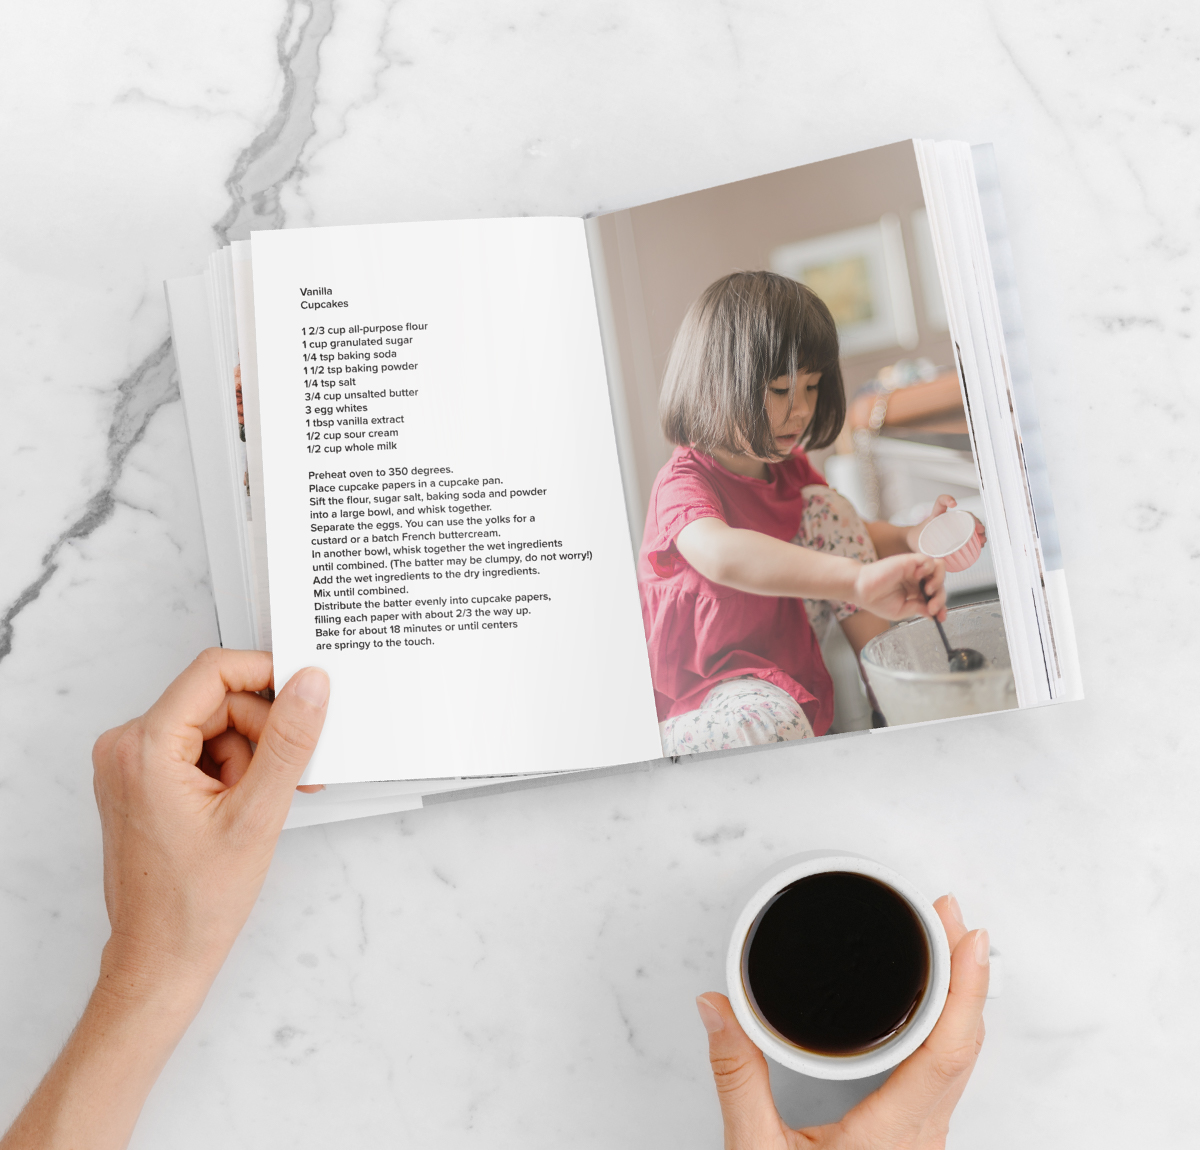 DIY recipe book opened to photo of little girl making cupcakes